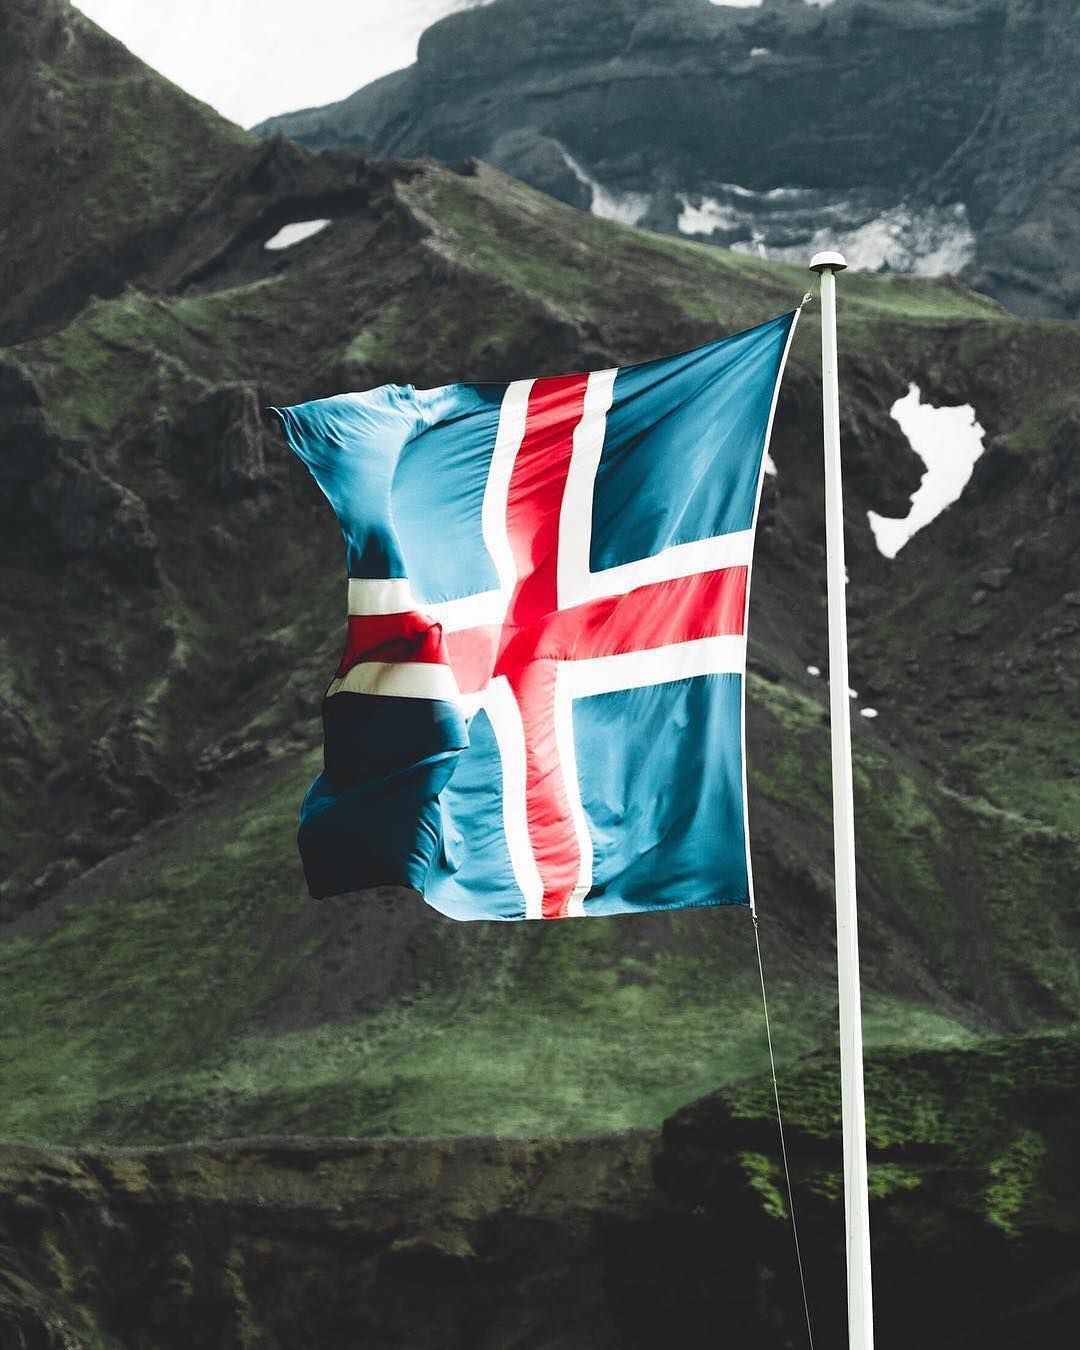 The Icelandic Flag Its Colours Representing The Ocean The Ice And The Fire Of The Island S Landscape Photo By Justcallmebenni Reisen Natur